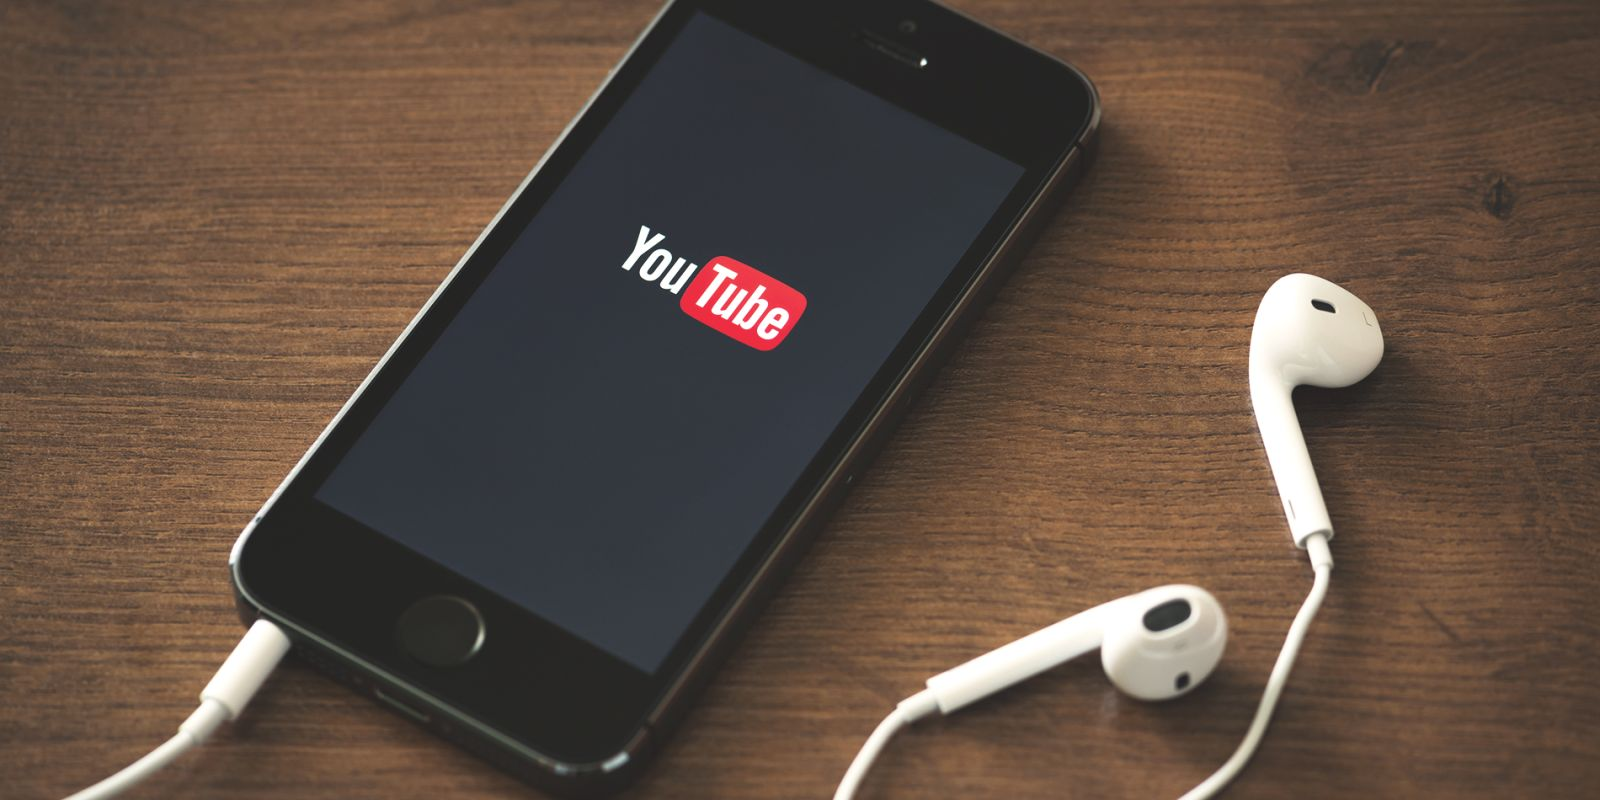 A picture of a phone with the YouTube app open and a set of earphones plugged in on the social video strategy page.